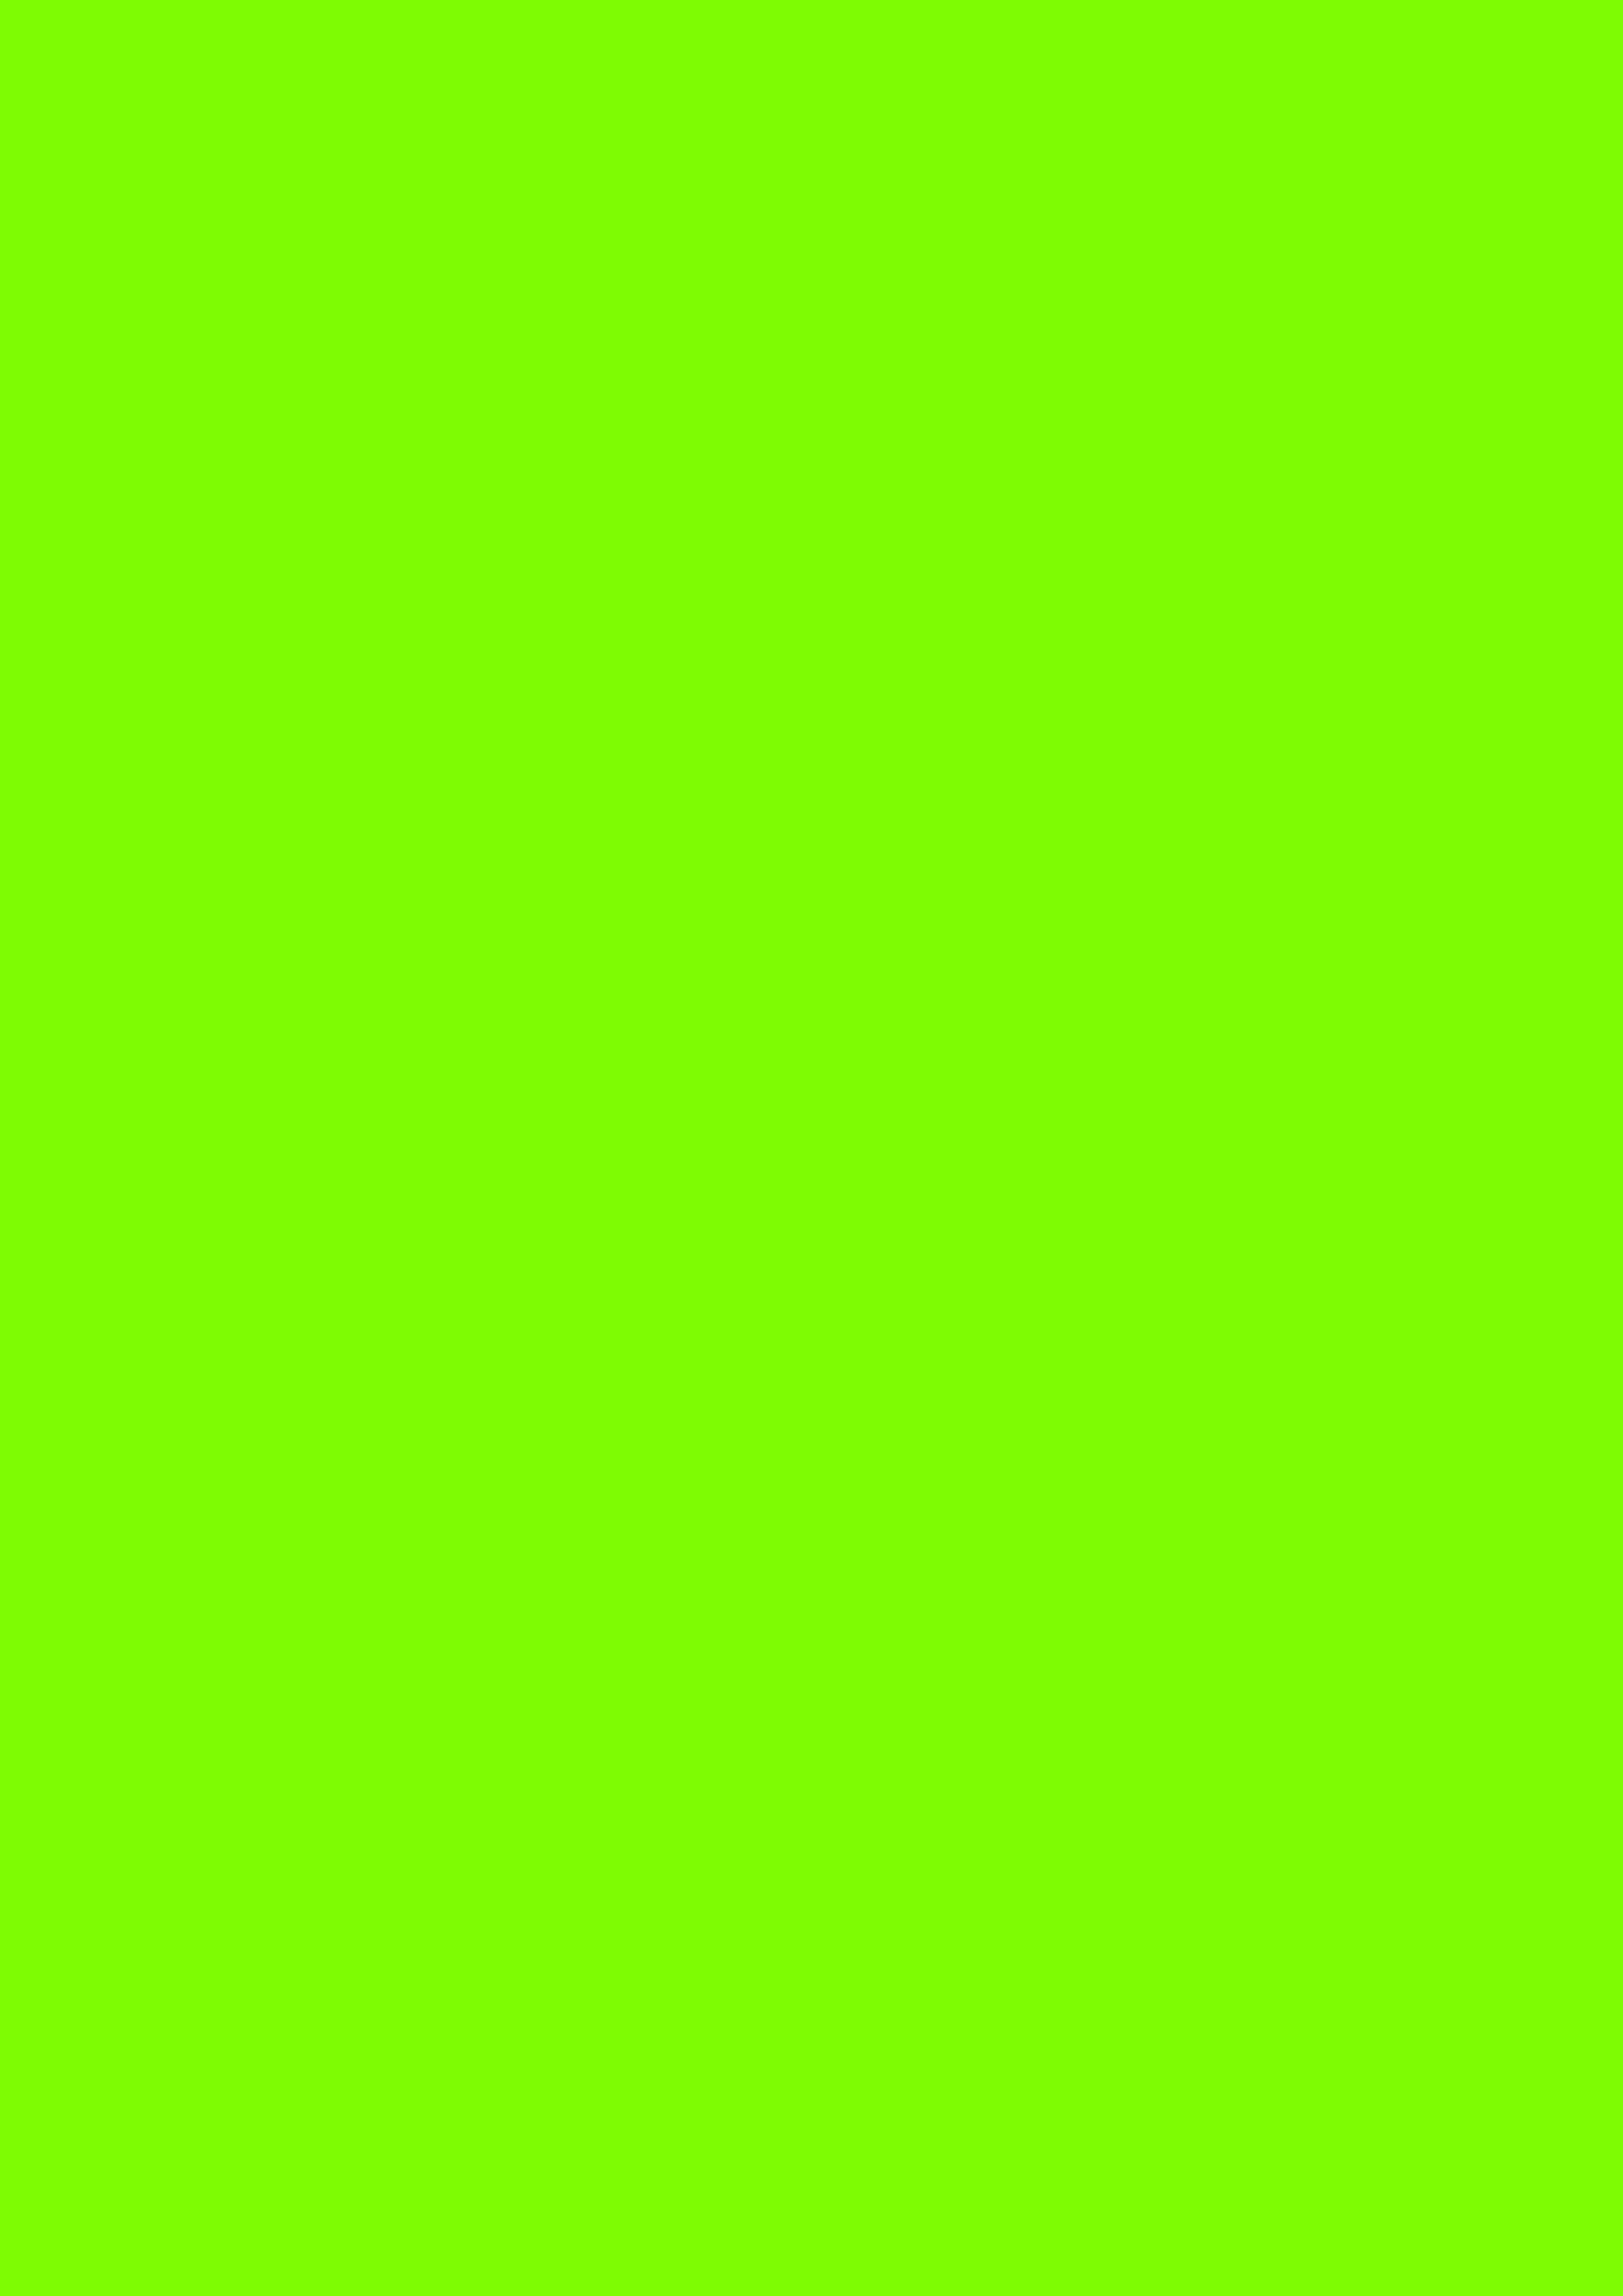 2480x3508 Lawn Green Solid Color Background